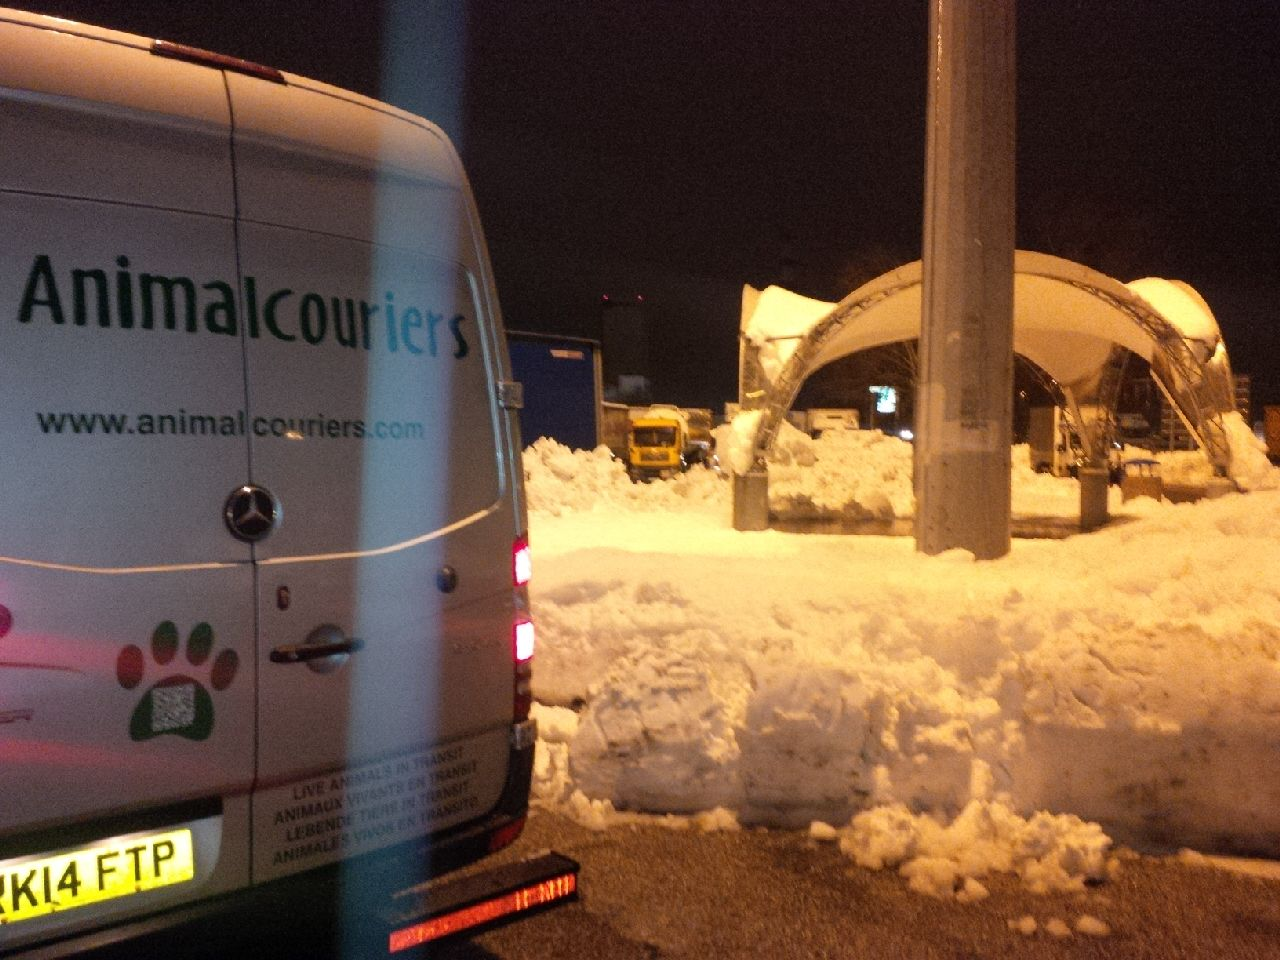 Snowy scenes in Italy persuaded us to keep motoring